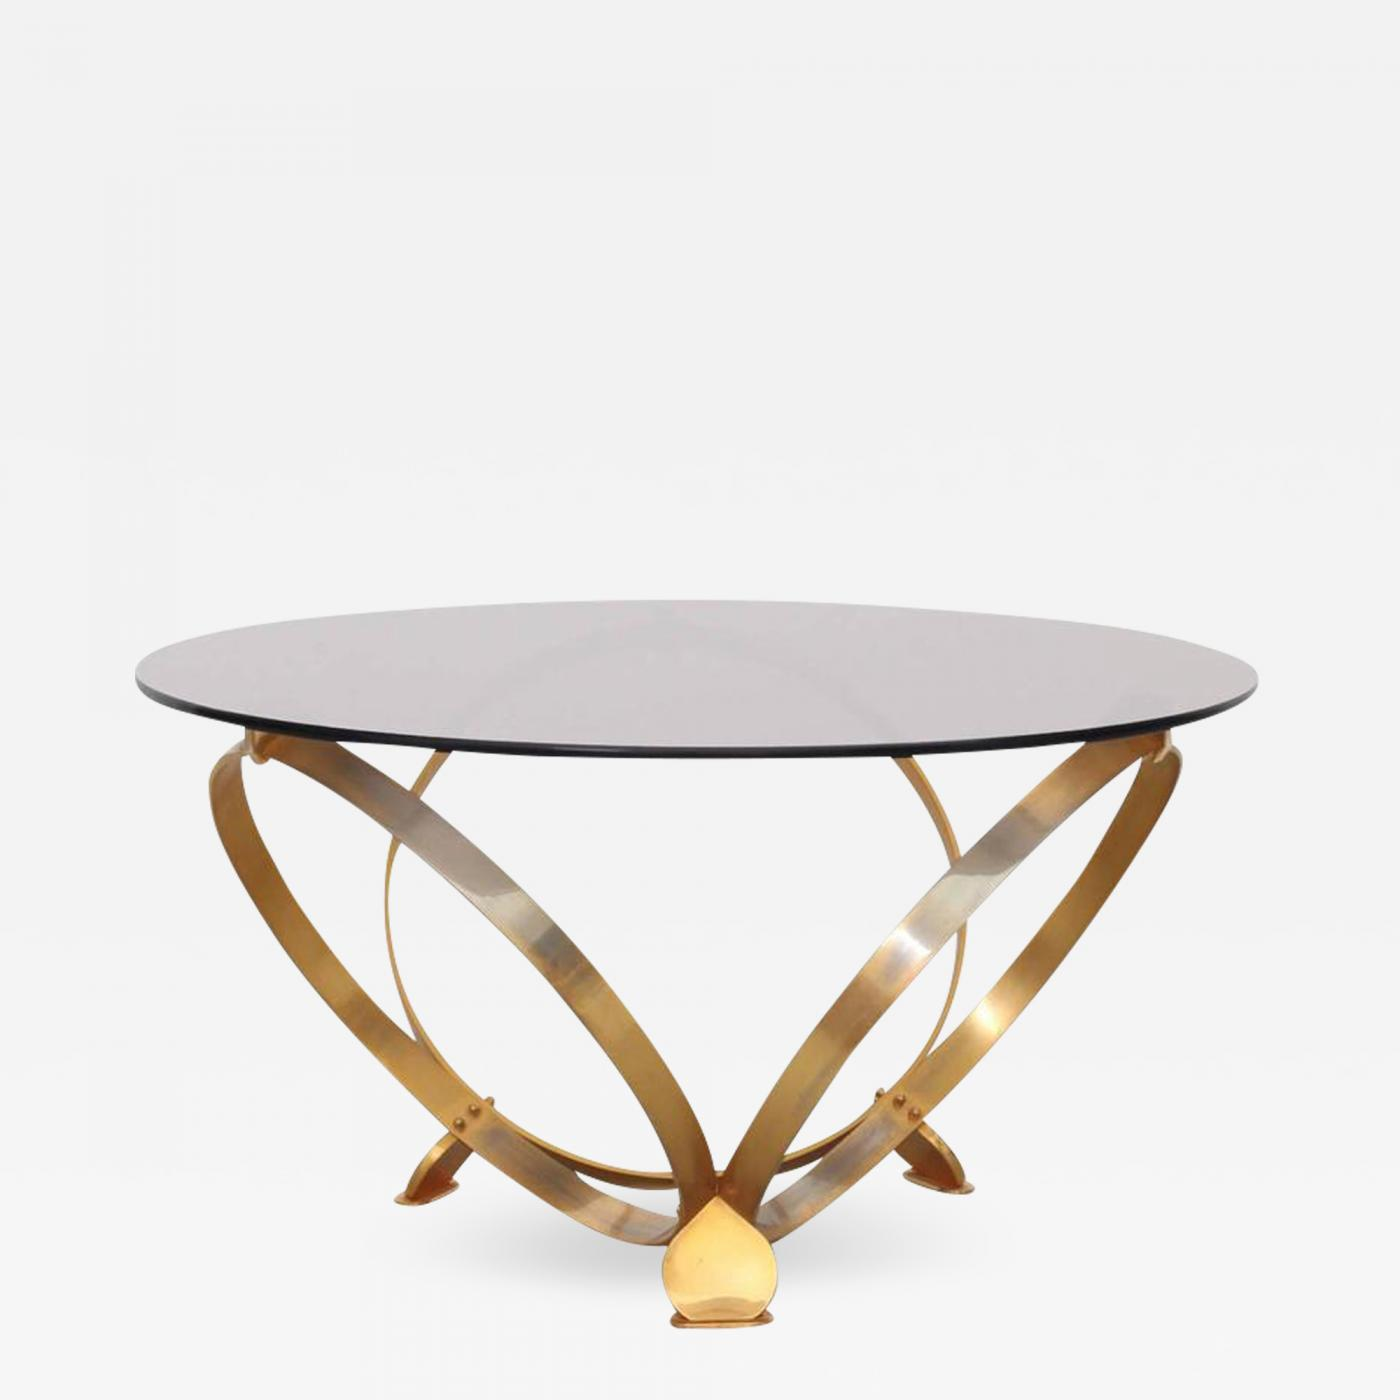 Awesome Knut Hesterberg Round Brass Geometric Rings Coffee Table With Glass Top Andrewgaddart Wooden Chair Designs For Living Room Andrewgaddartcom